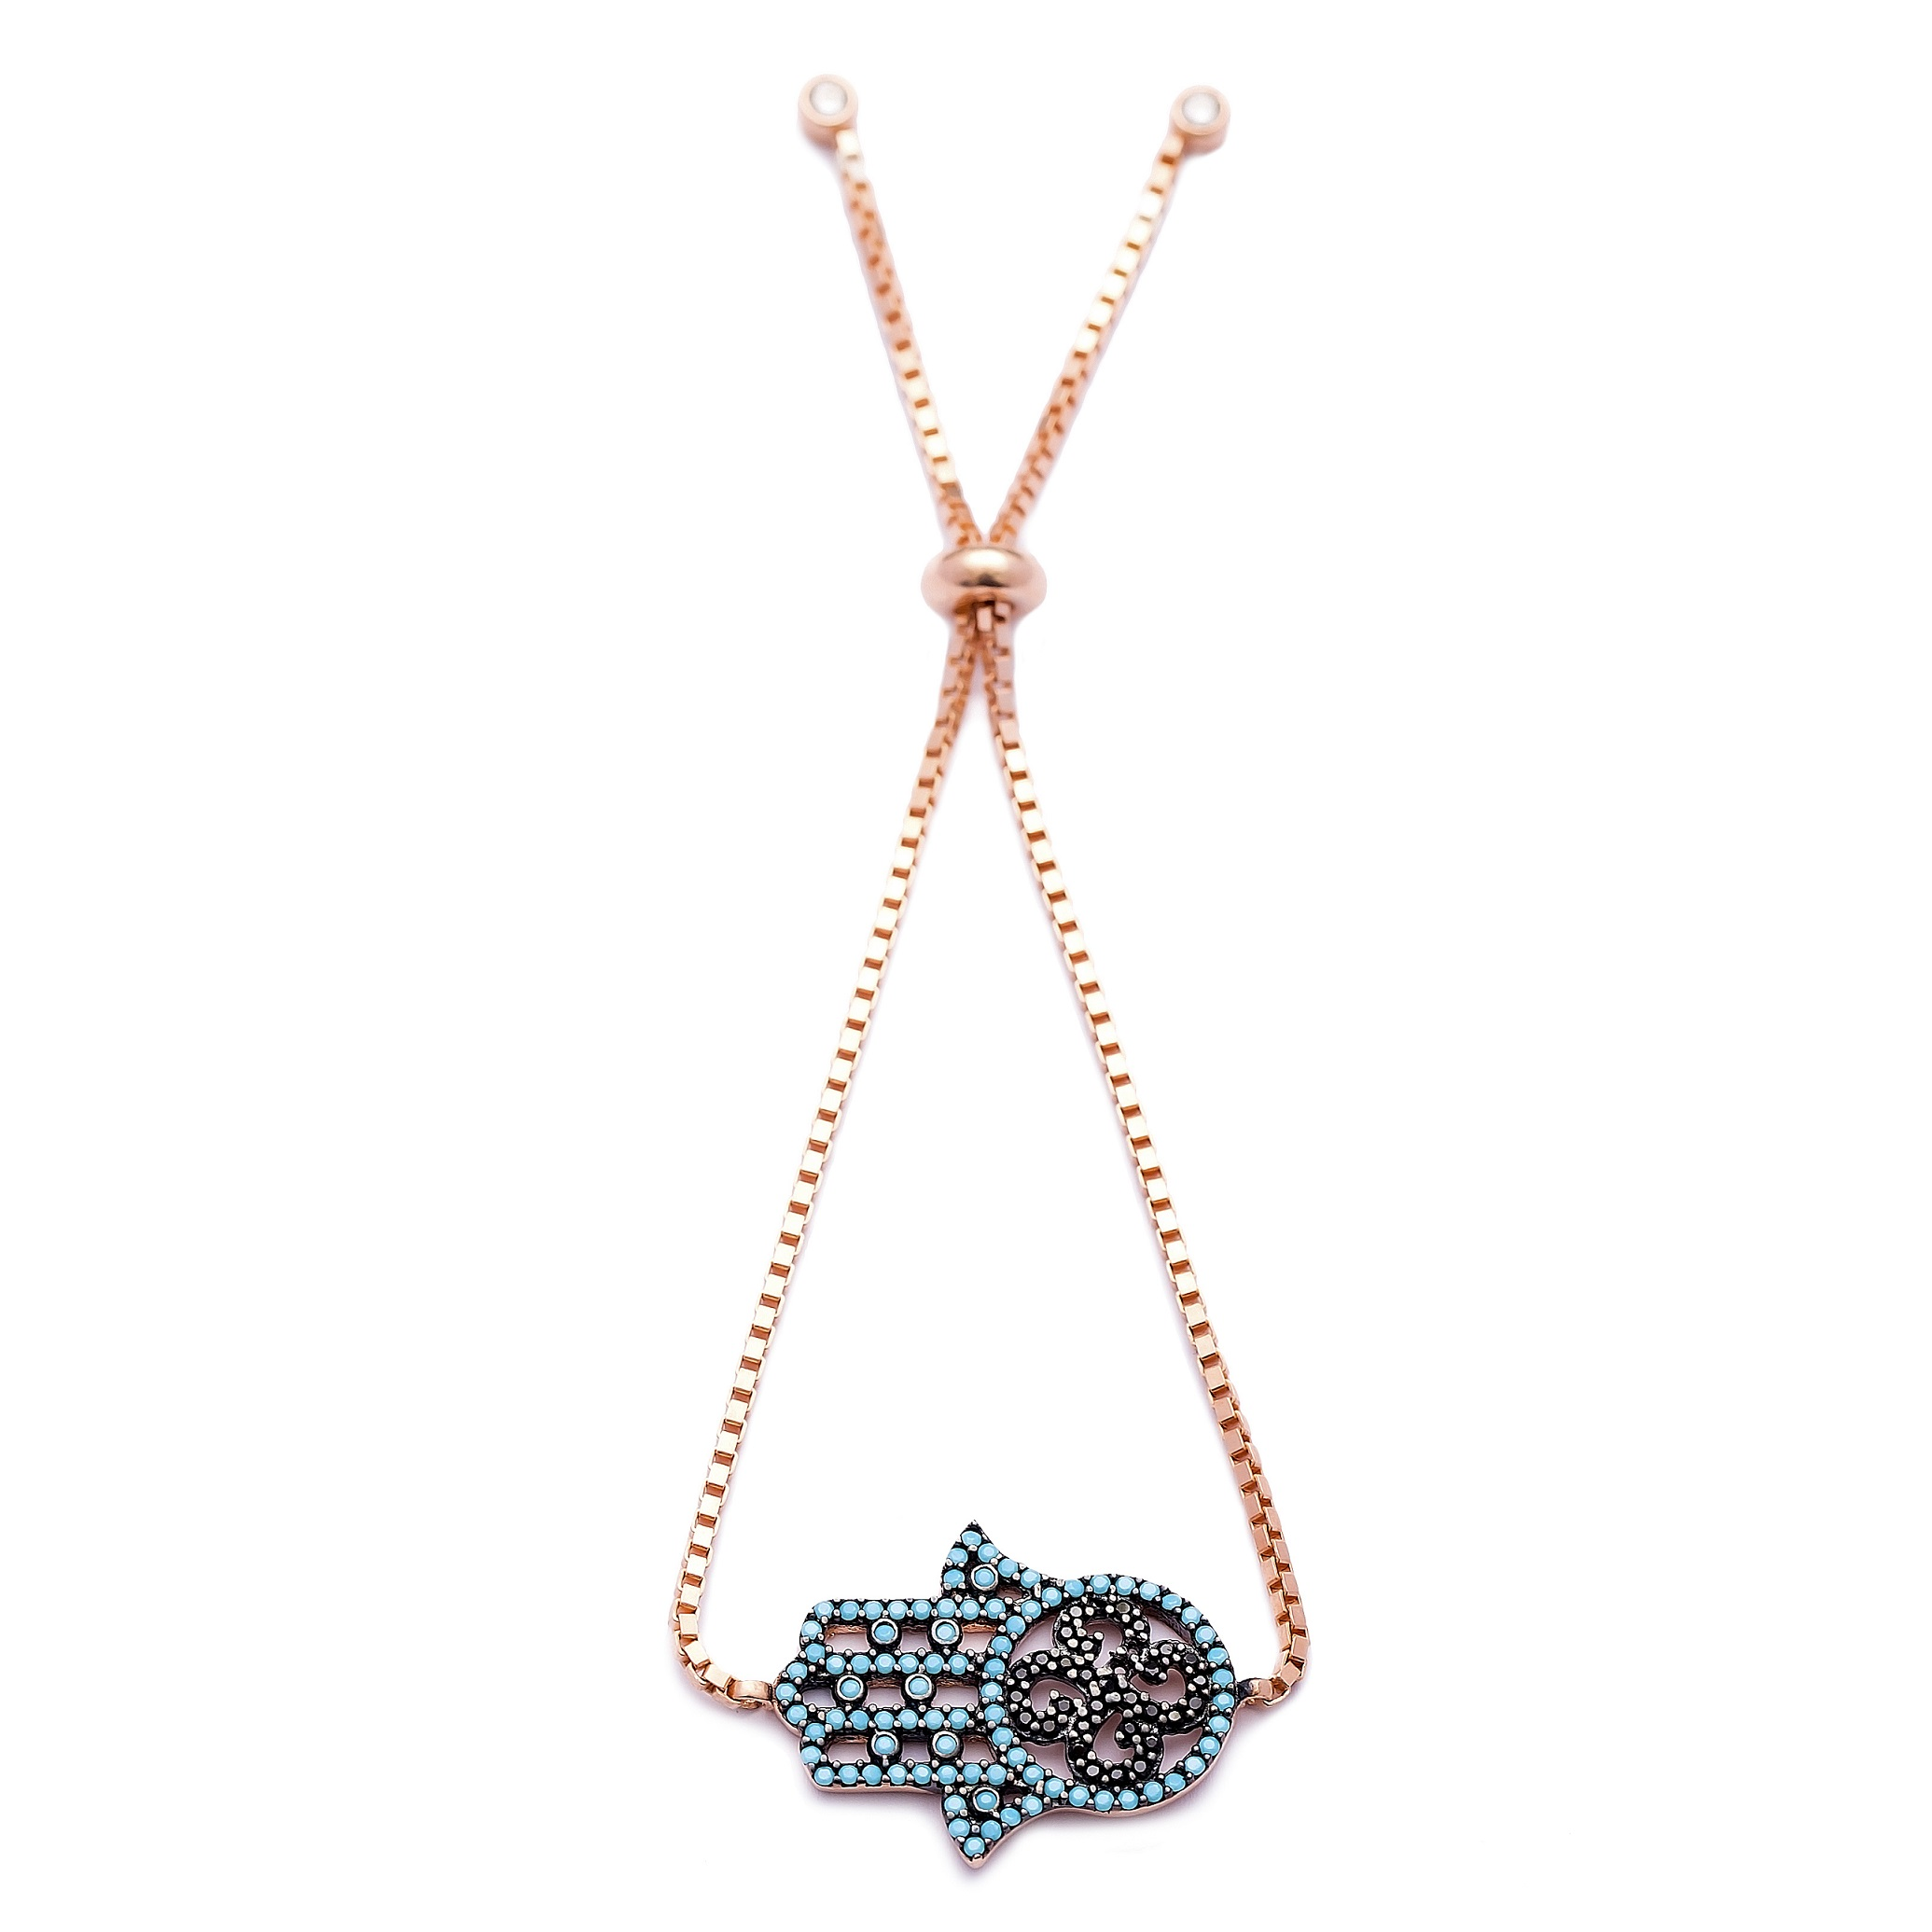 Hamsa Design Handmade Turkish Wholesale Adjustable Tennis Silver Bracelet